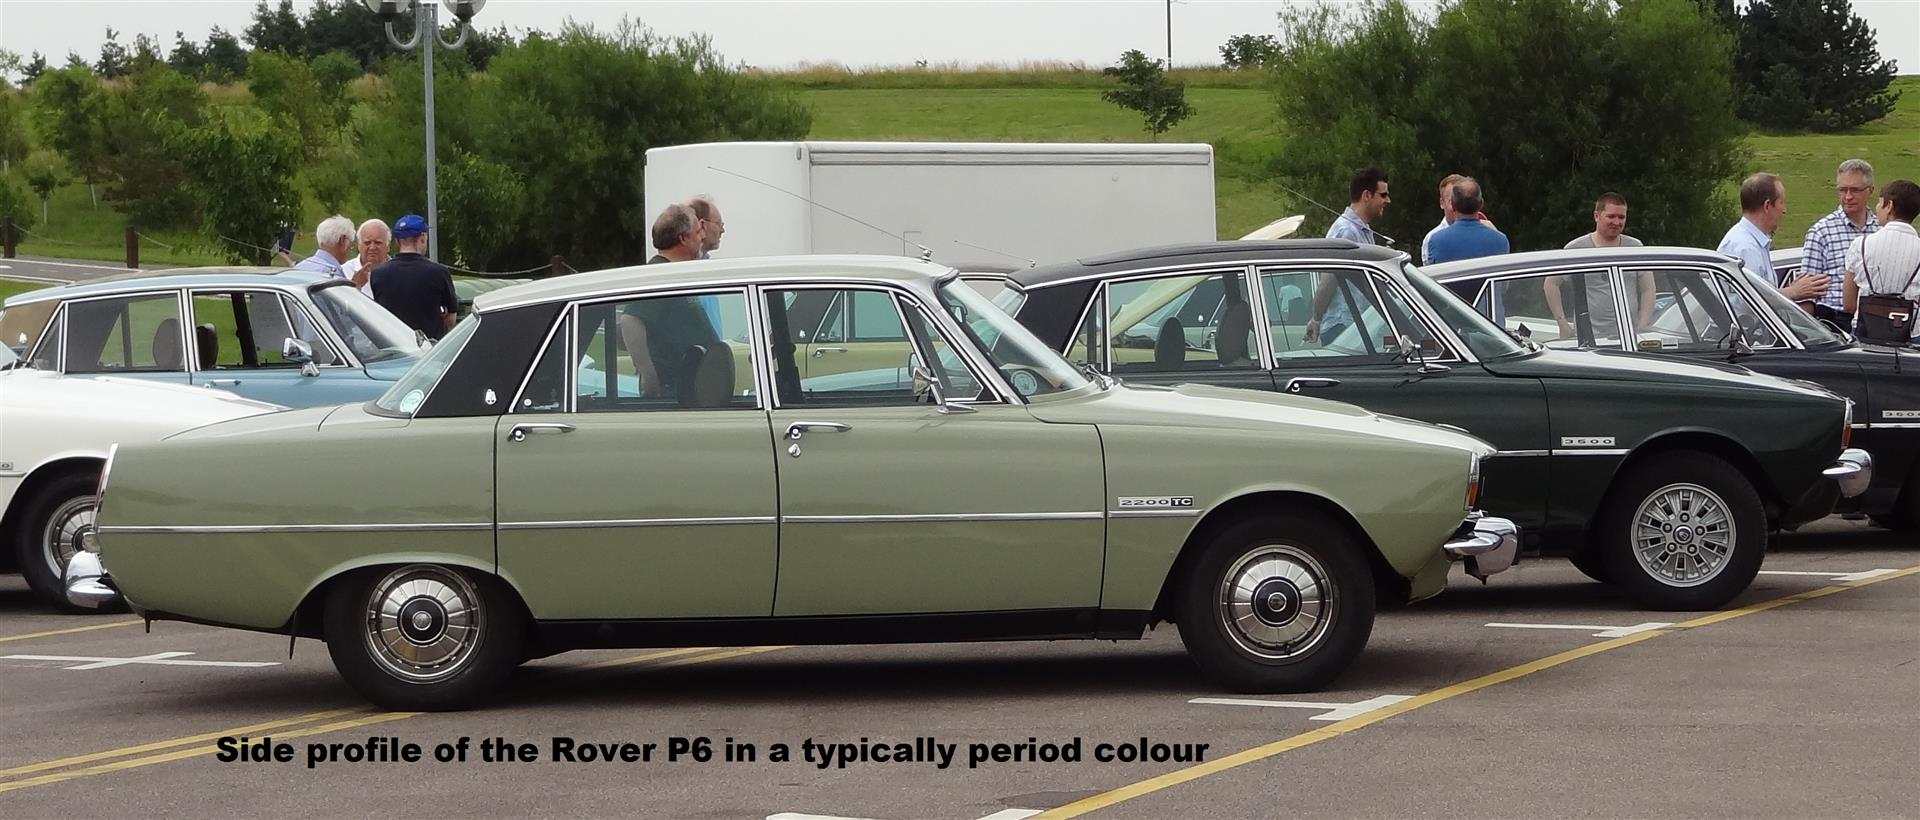 Rover P6 Furry Dice The Rover P6 Yorkshire Bears